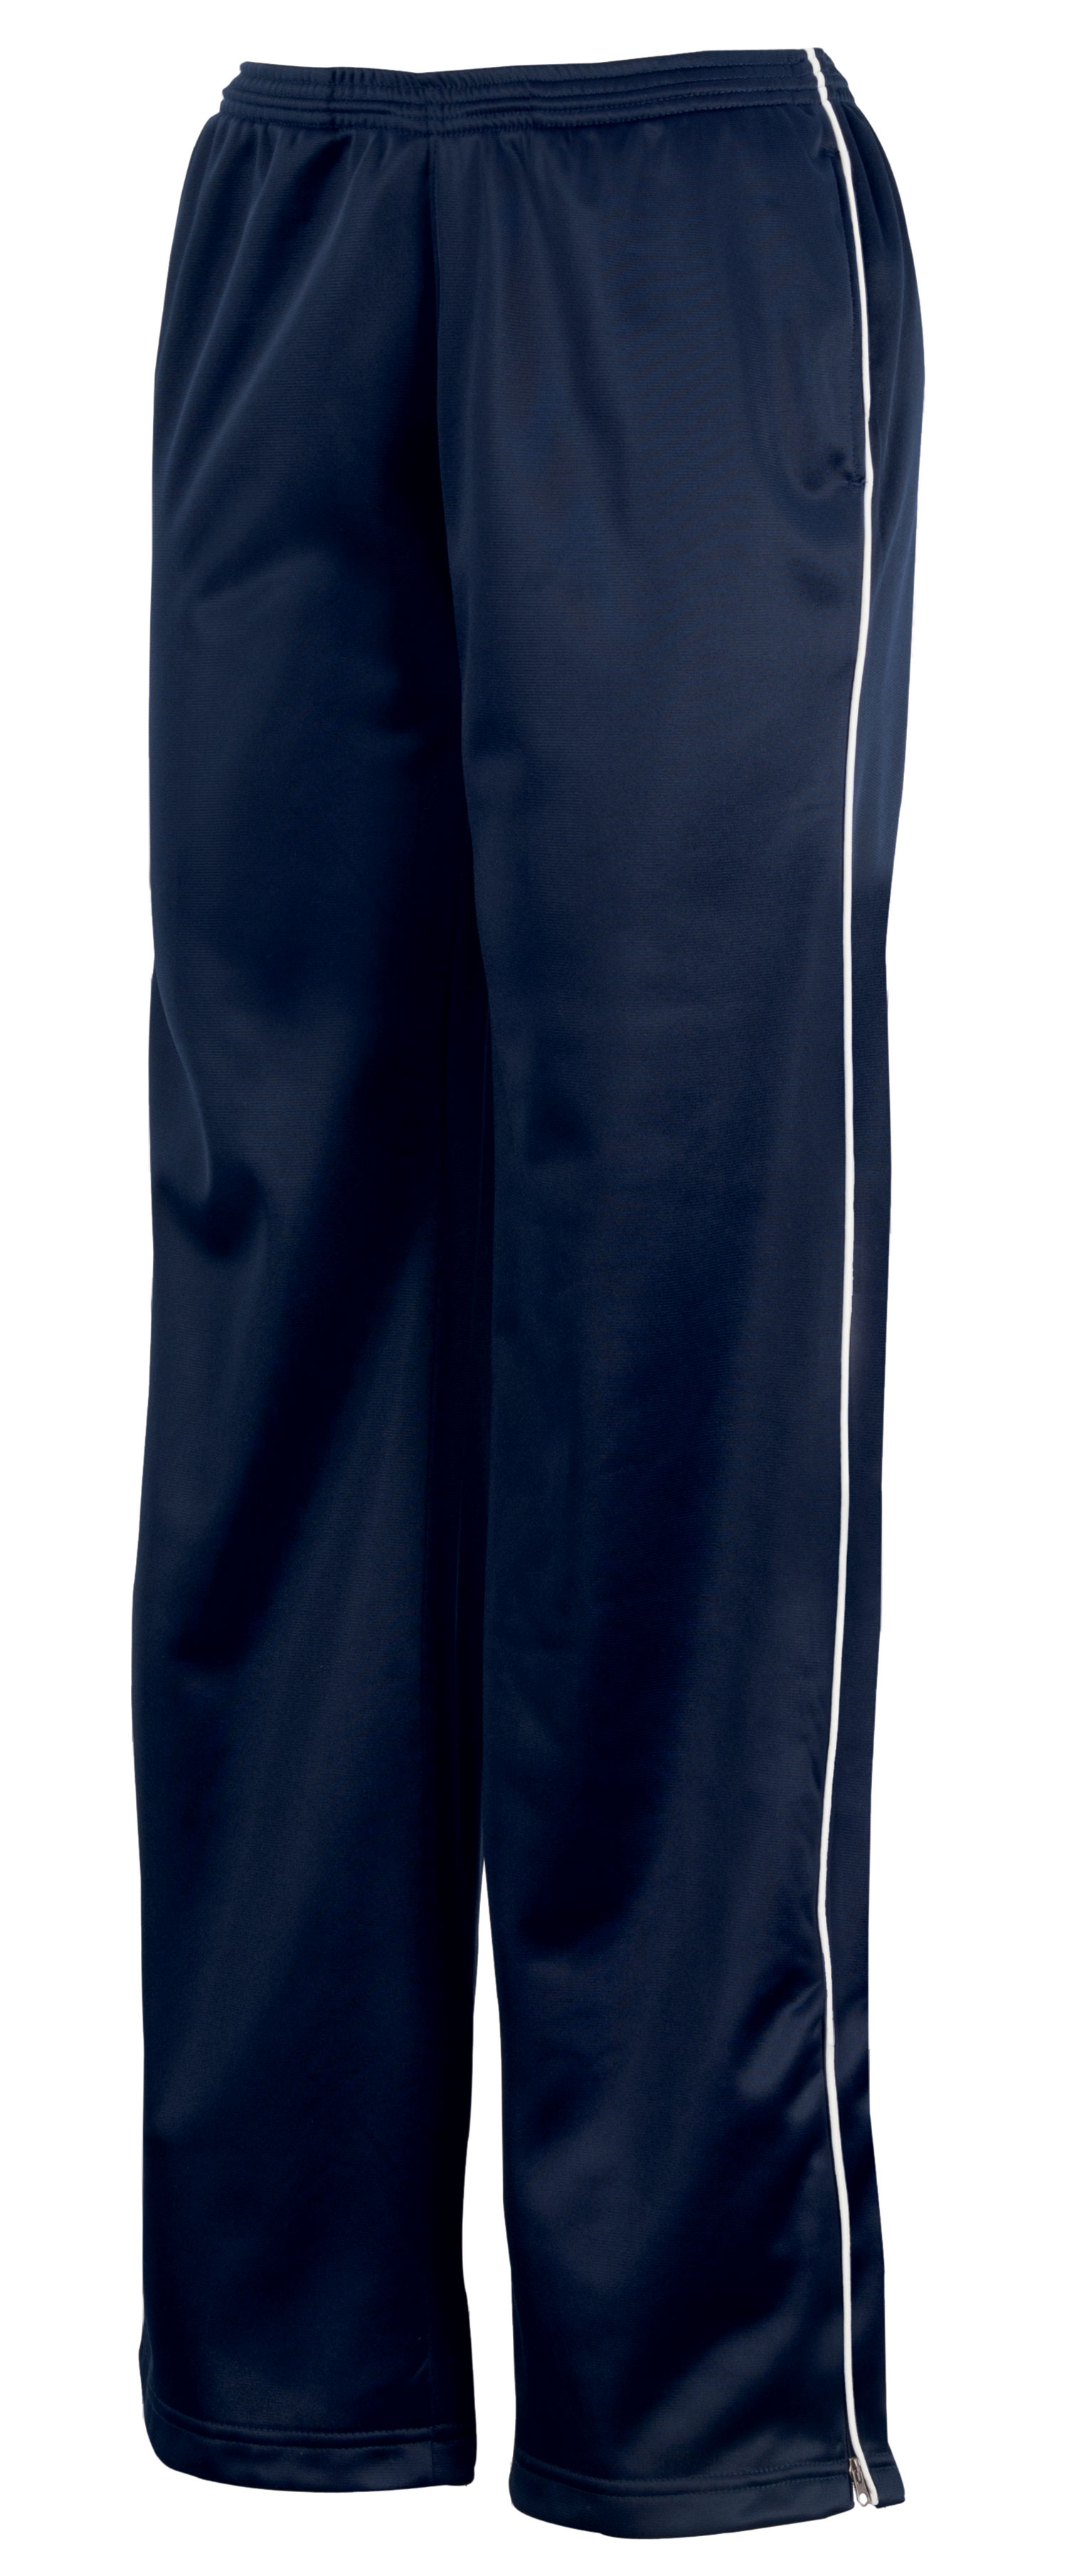 Womens Rev Pant by Charles River